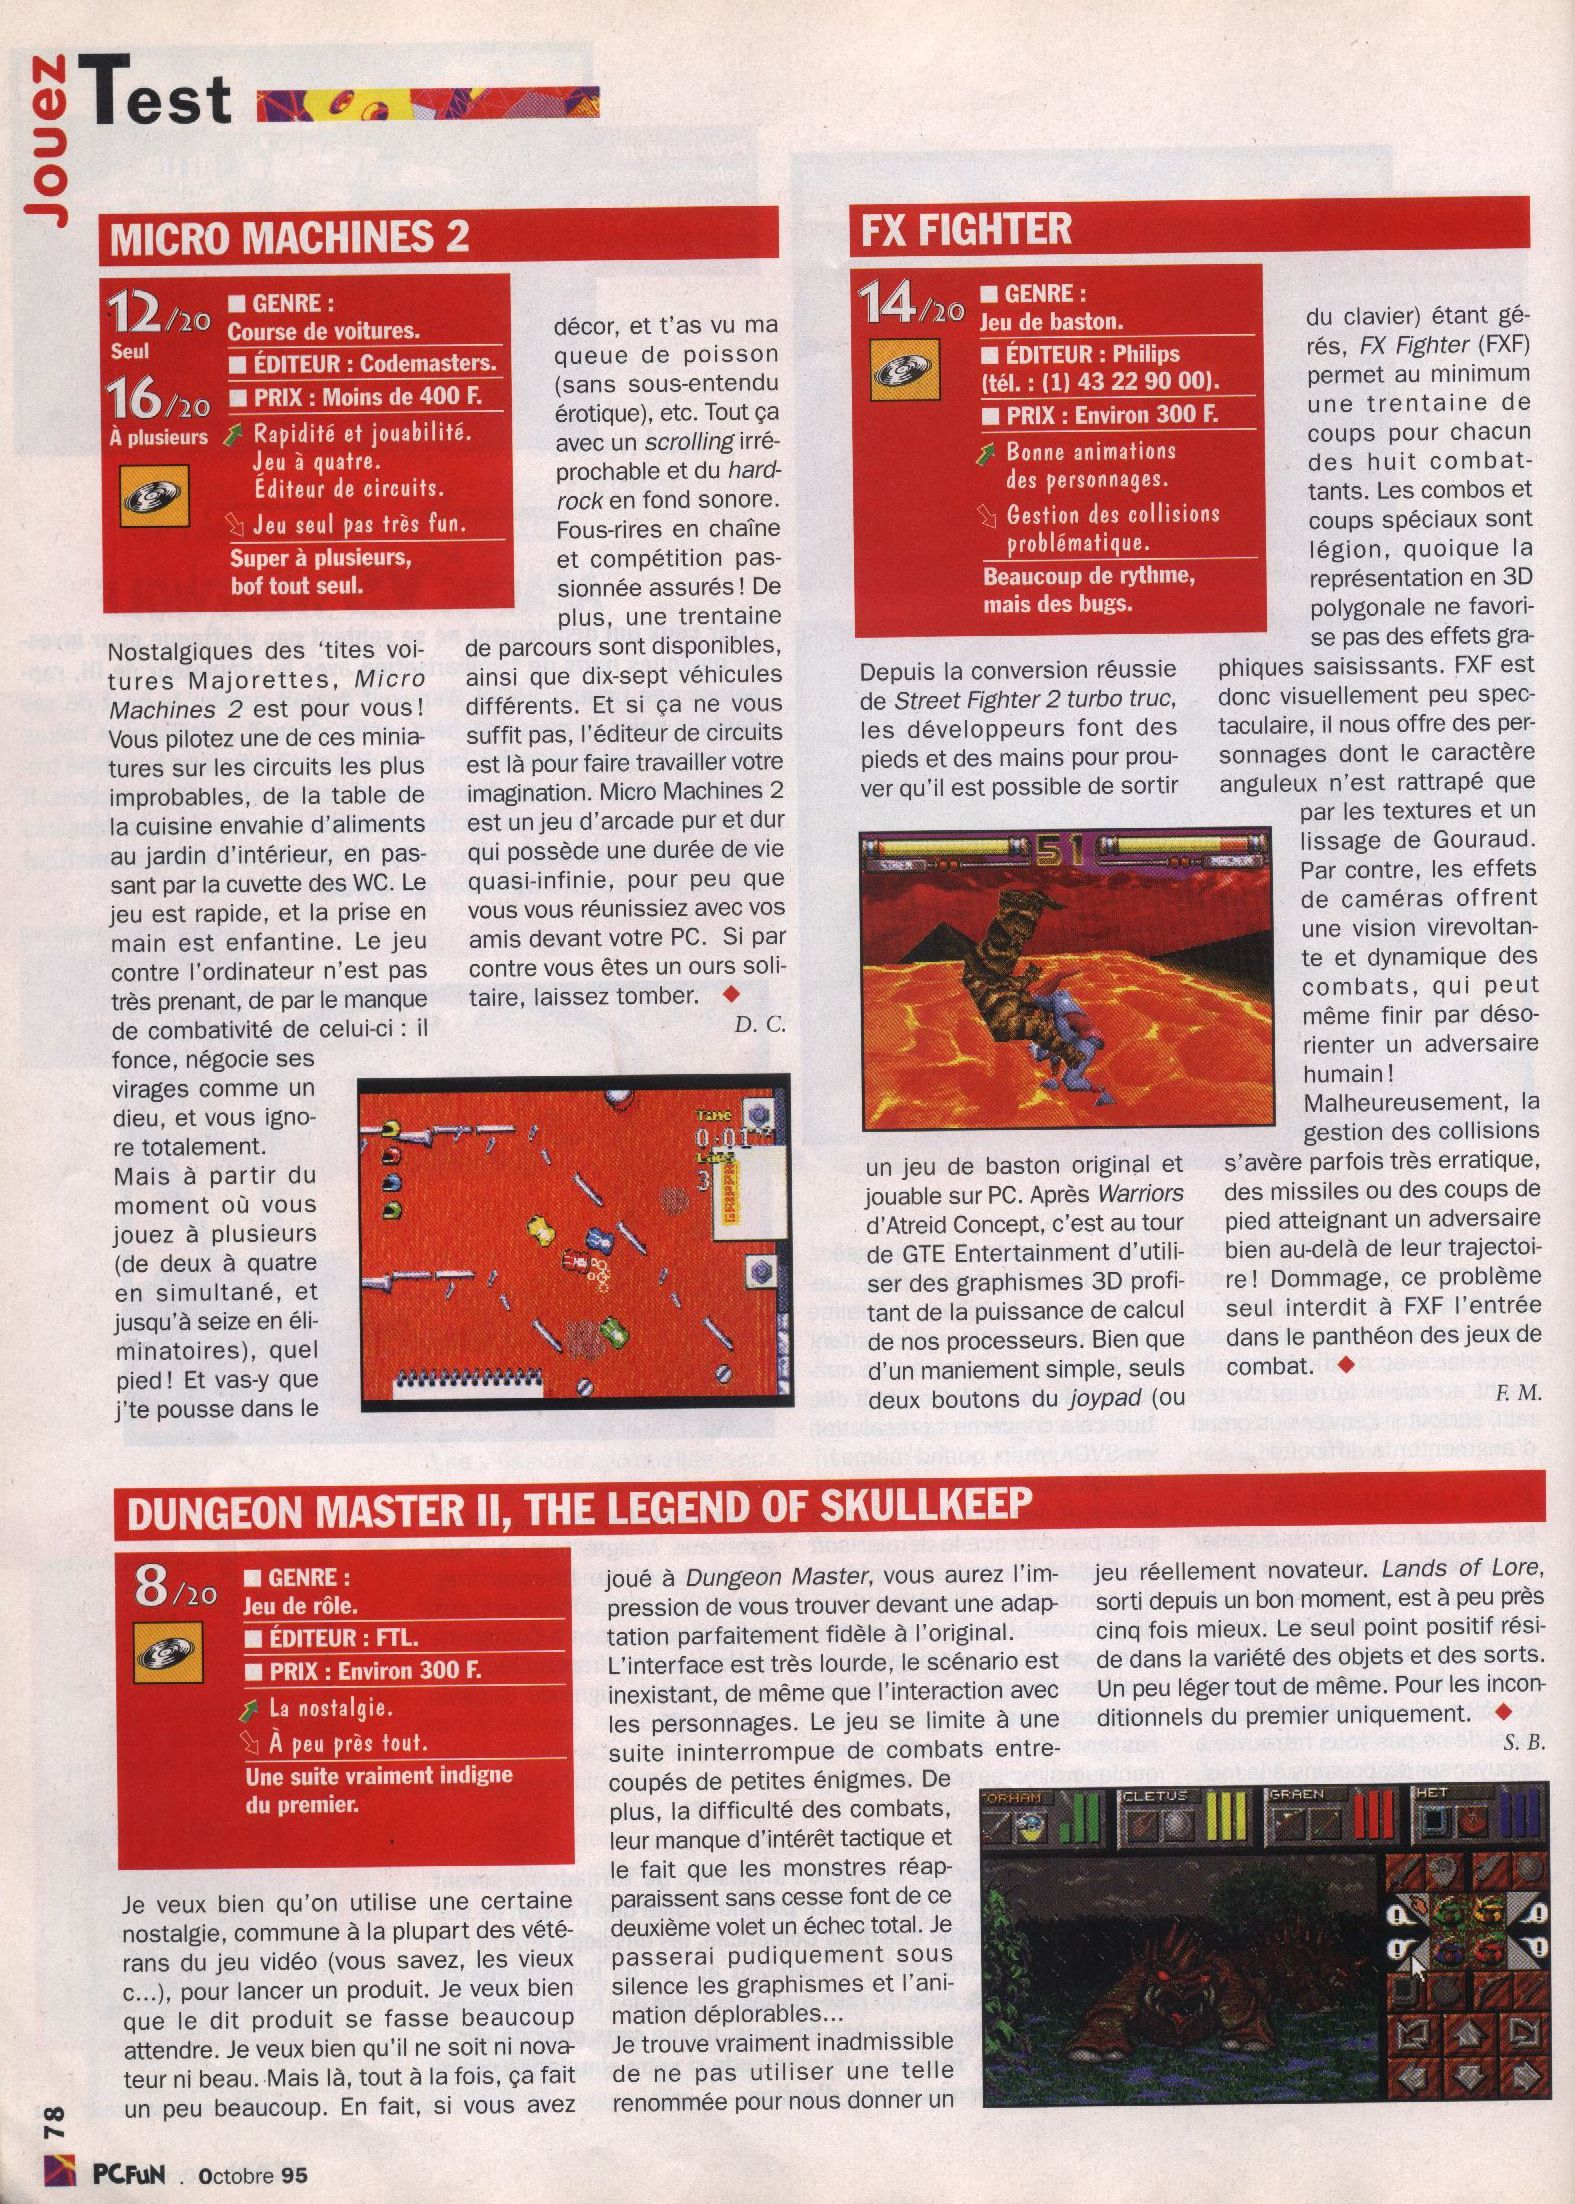 Dungeon Master II for PC Review published in French magazine 'PC Fun', Issue #8 October 1995, Page 78